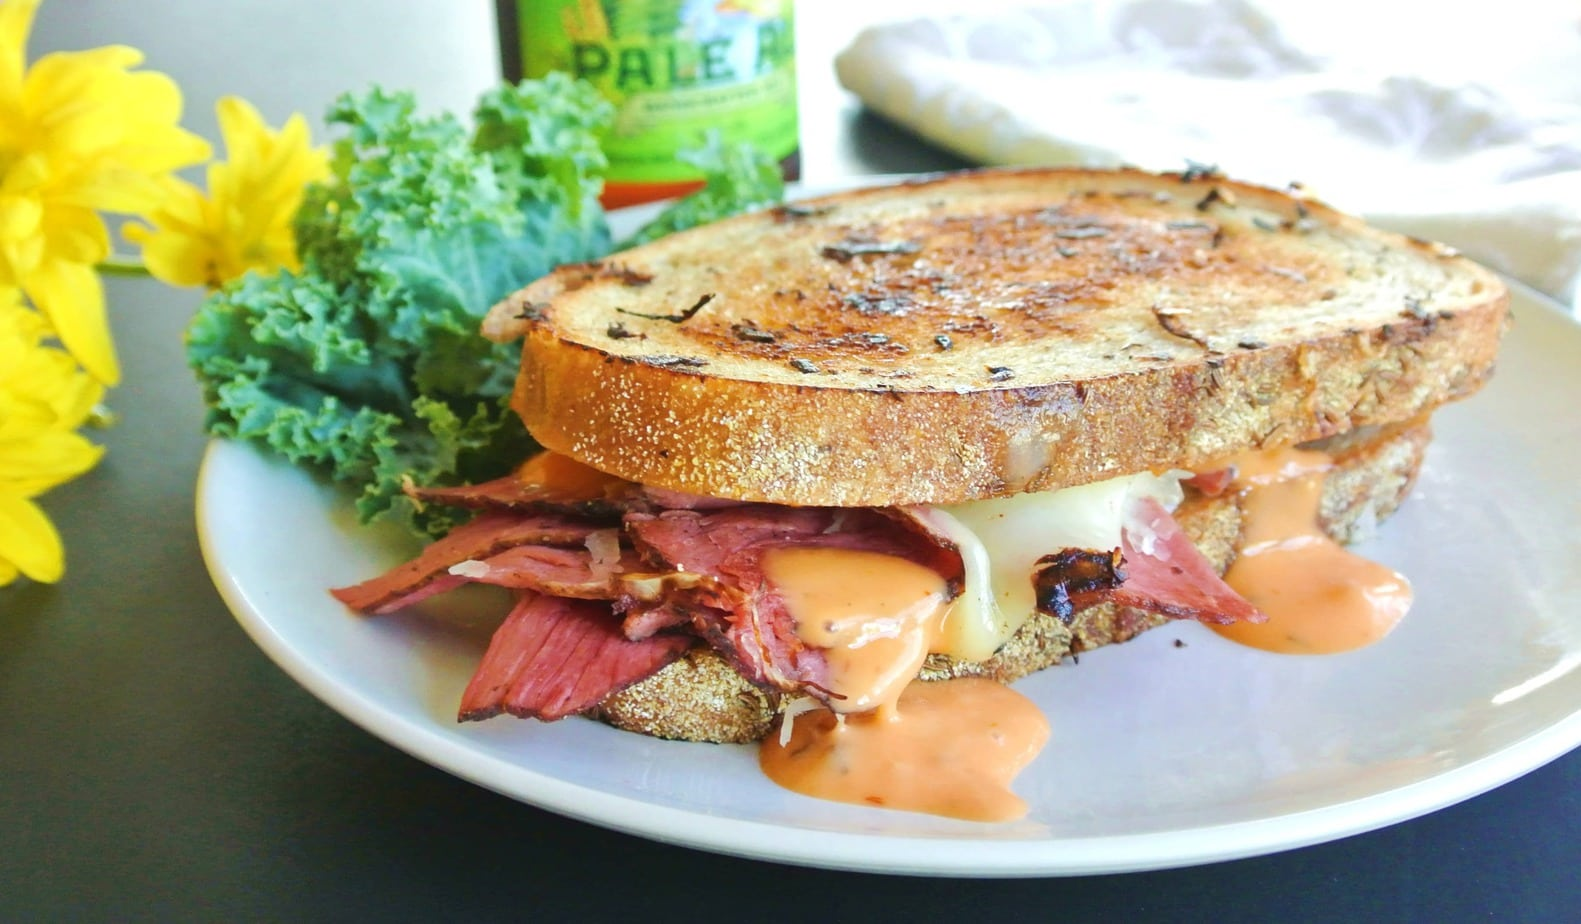 Make this classic grilled Reuben Pastrami on Rye Bread Sandwich recipe at home! All you need is sauerkraut, Swiss cheese and Russian dressing! It's easy!